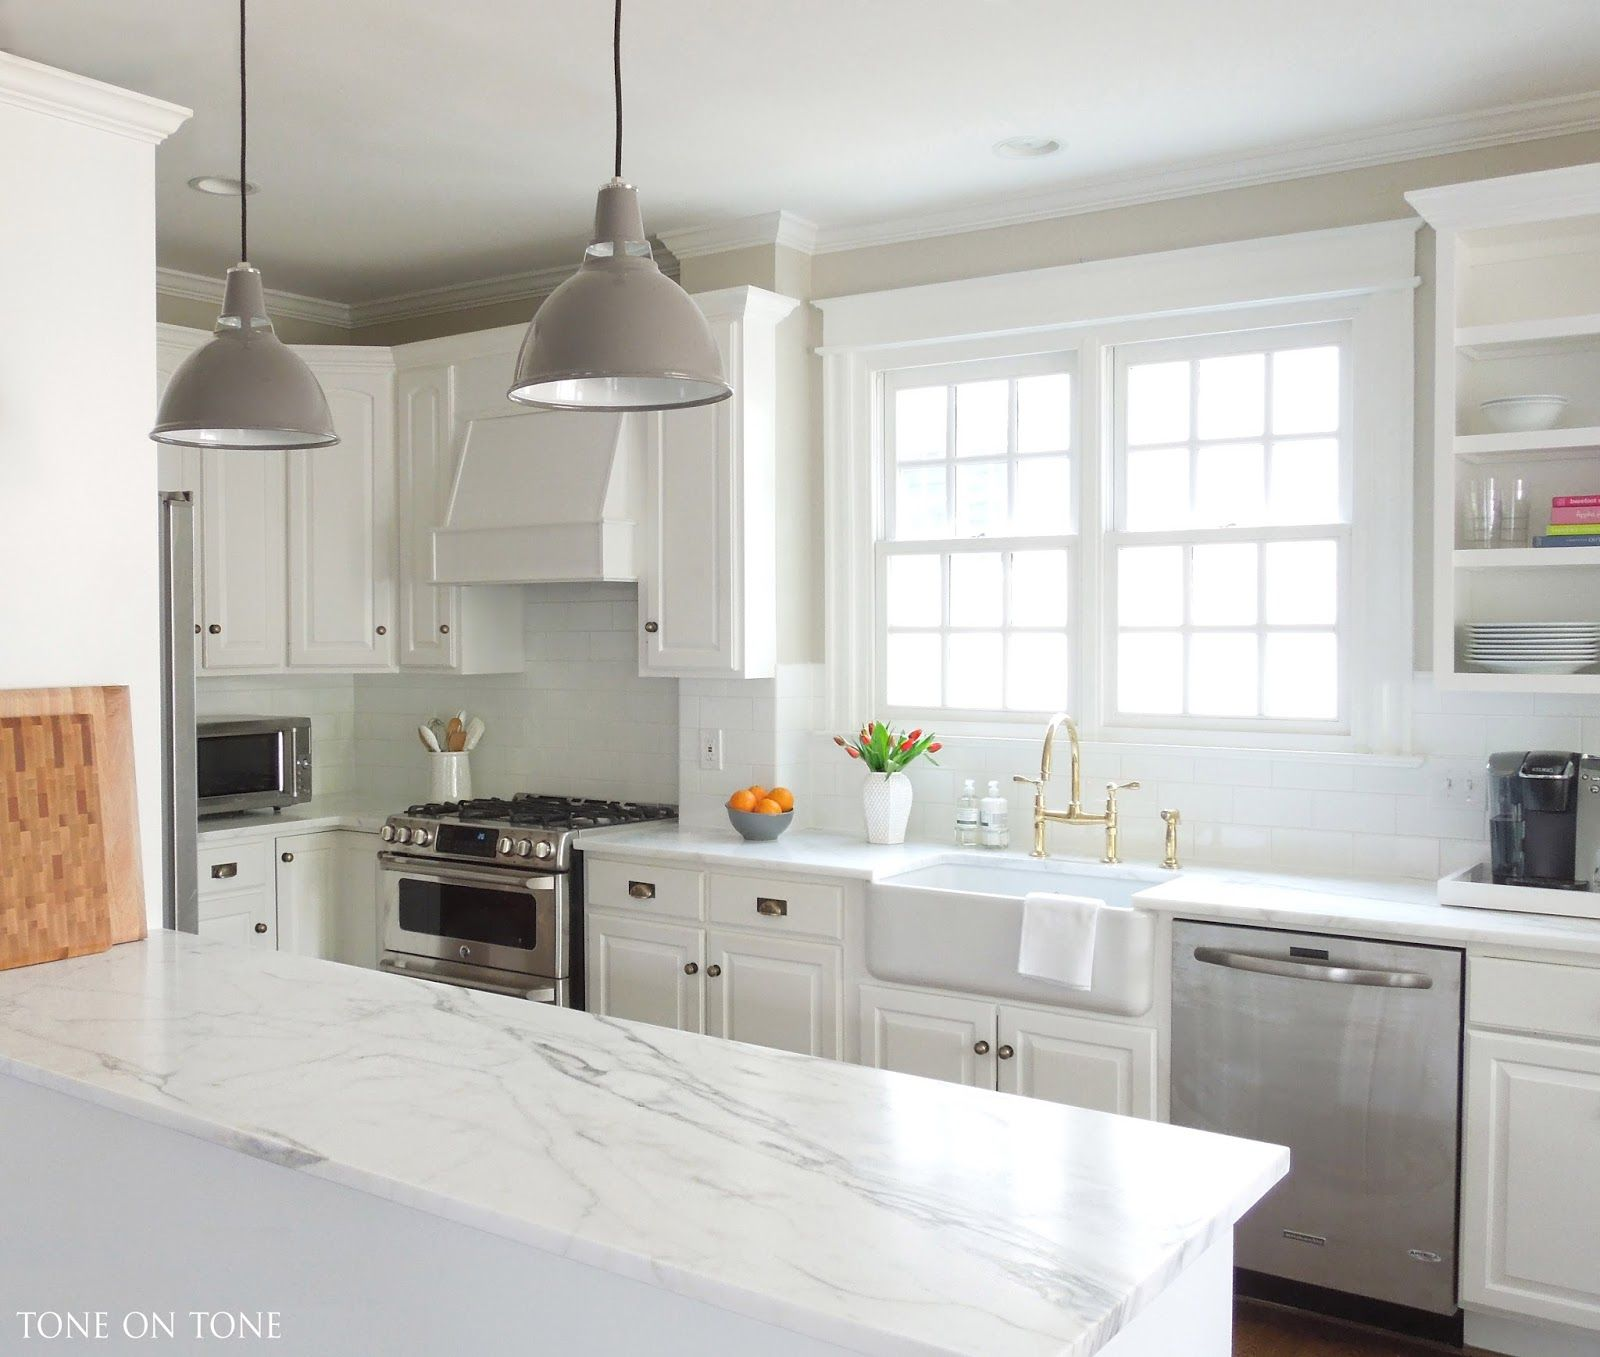 7 Ways to Upgrade Your Kitchen Without Replacing